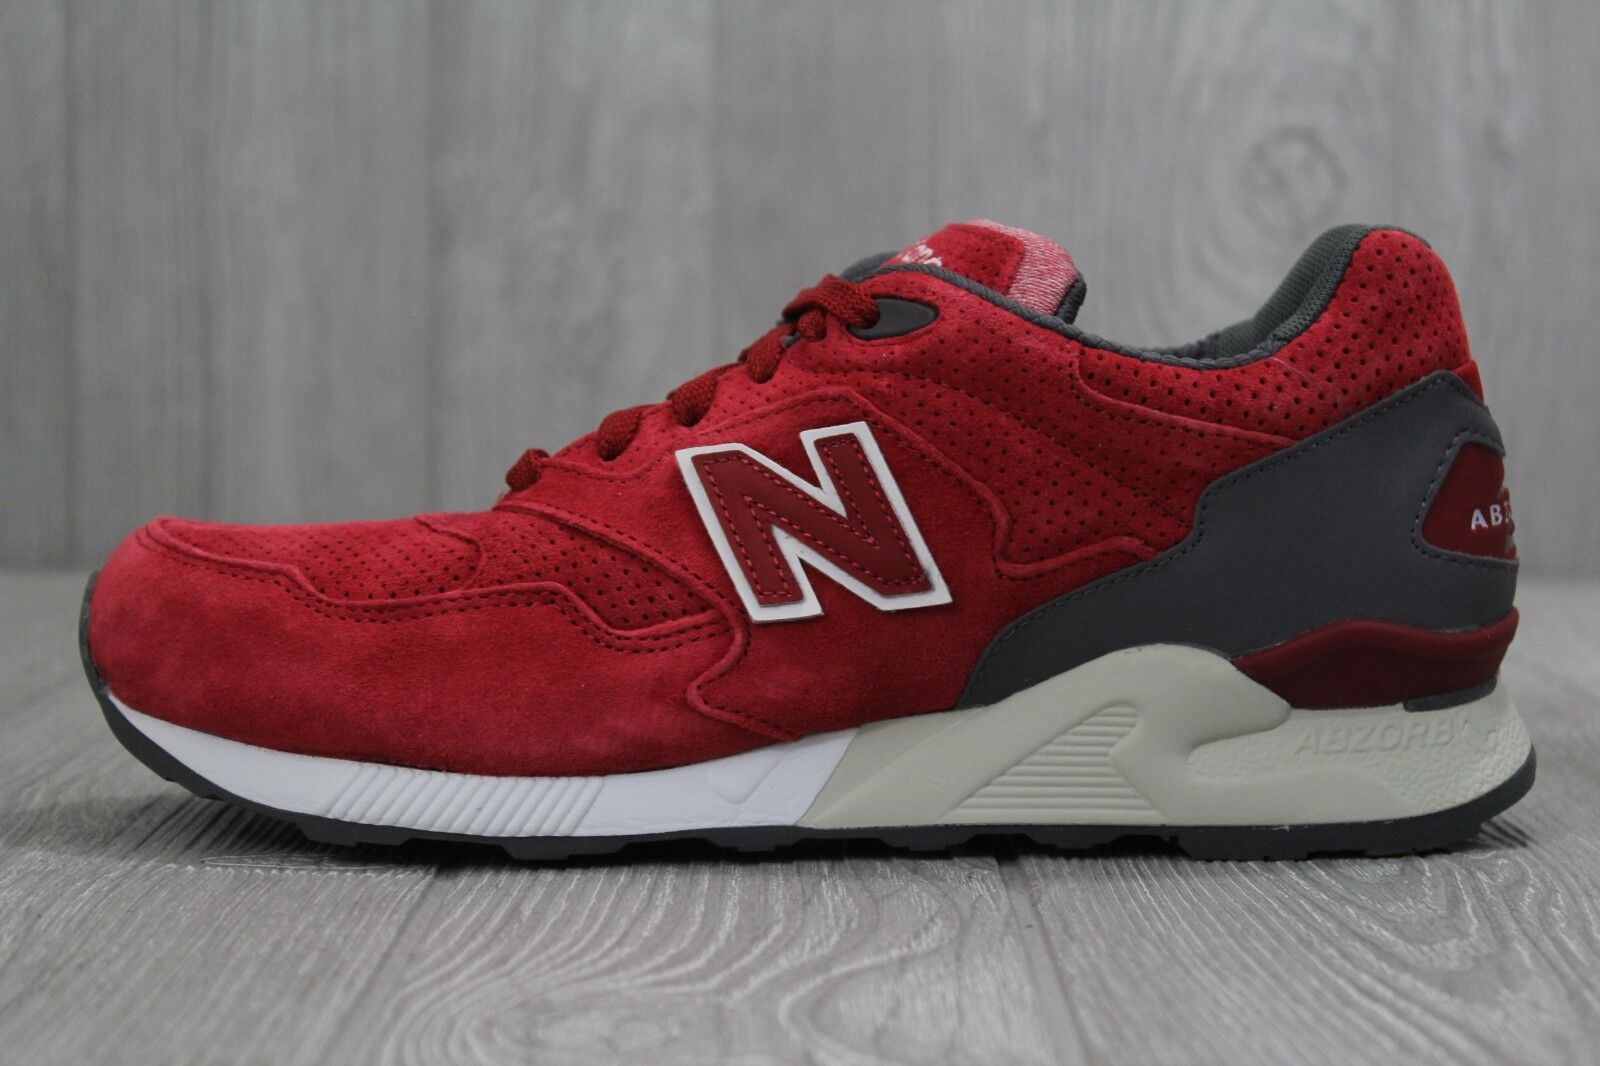 01589280cb29dd 33 New Balance 878 Red Suede White ML878SRB 8.5 Running shoes Men s Size  nxryue2537-Athletic Shoes - sandals.ewdayplumbing.com